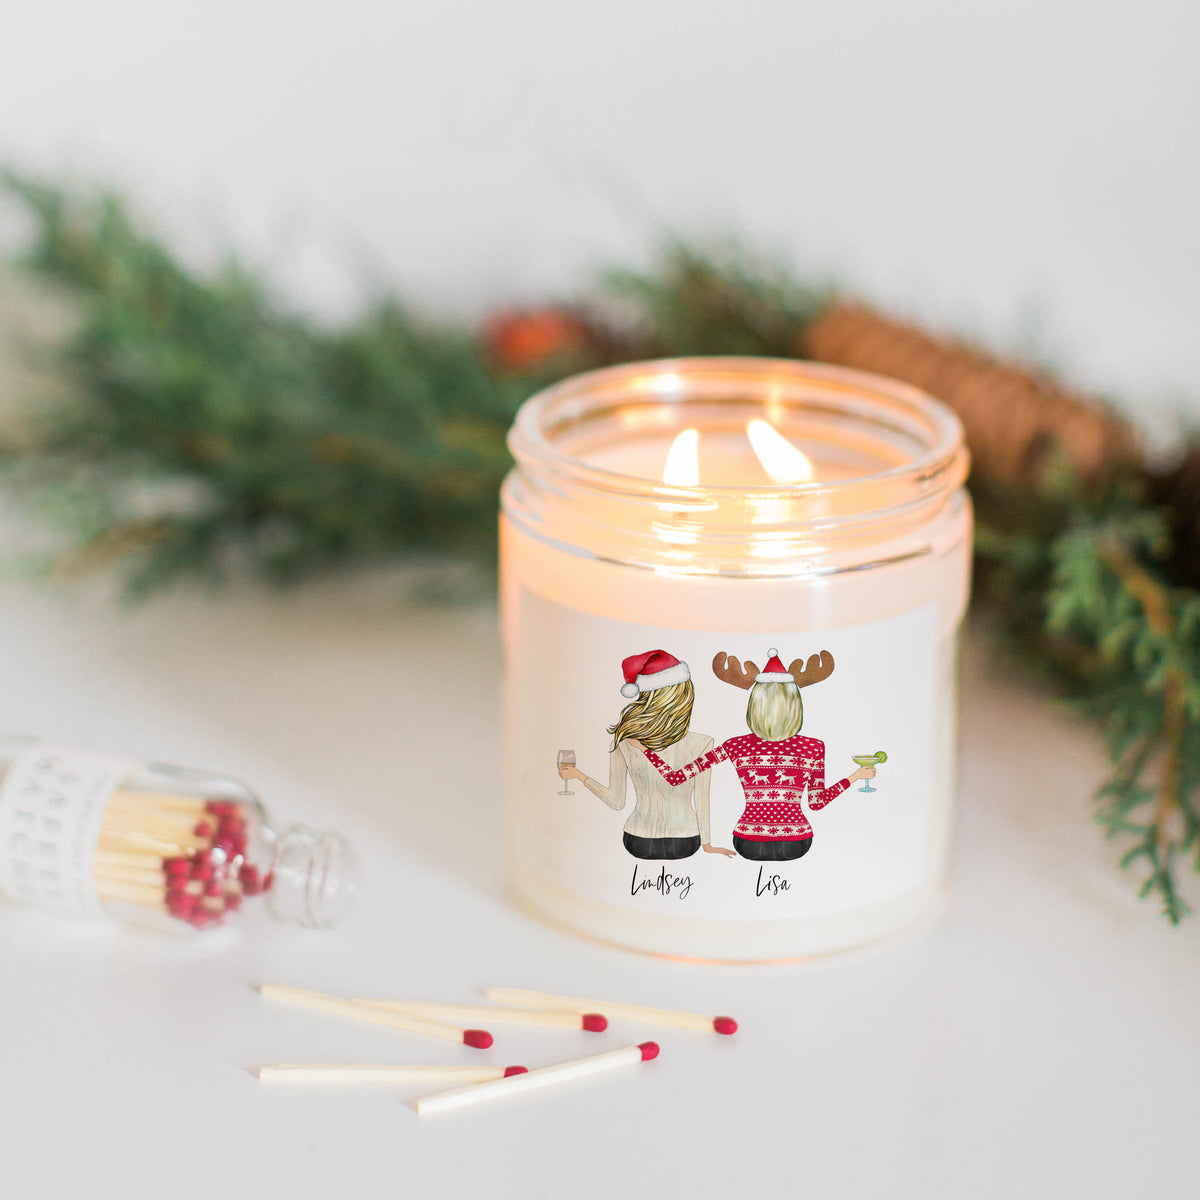 Holiday Portraits Candle & Royal Treatment Tea Gift Set